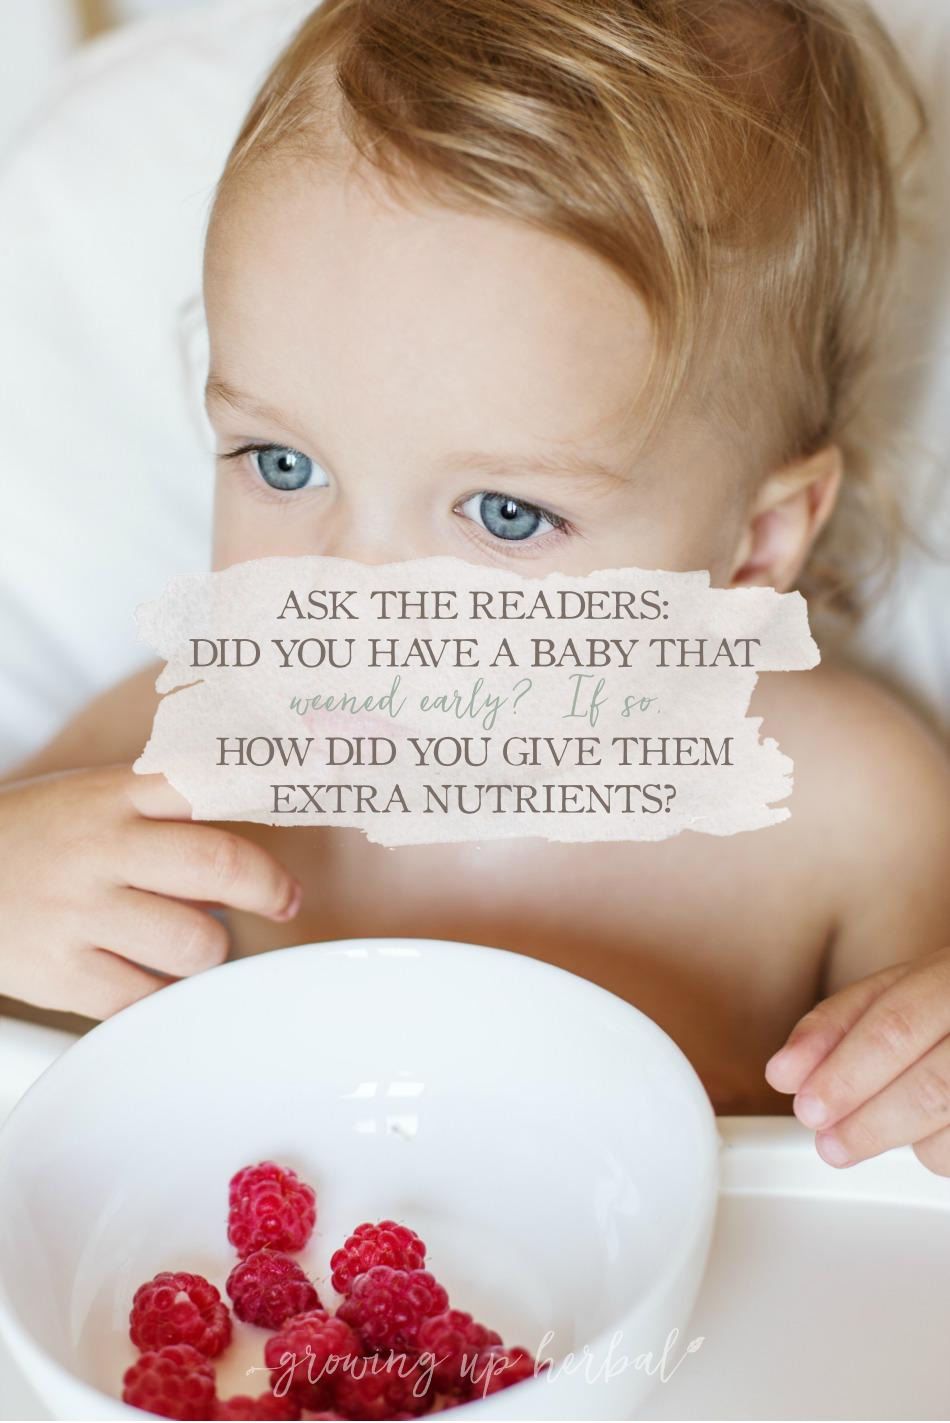 Ask The Readers: Did You Have A Baby That Weaned Early? If So, How Did You Give Them Extra Nutrients? | Growing Up Herbal | Did your baby wean early? How did you provide them with extra nutrients? I wanna hear from you!